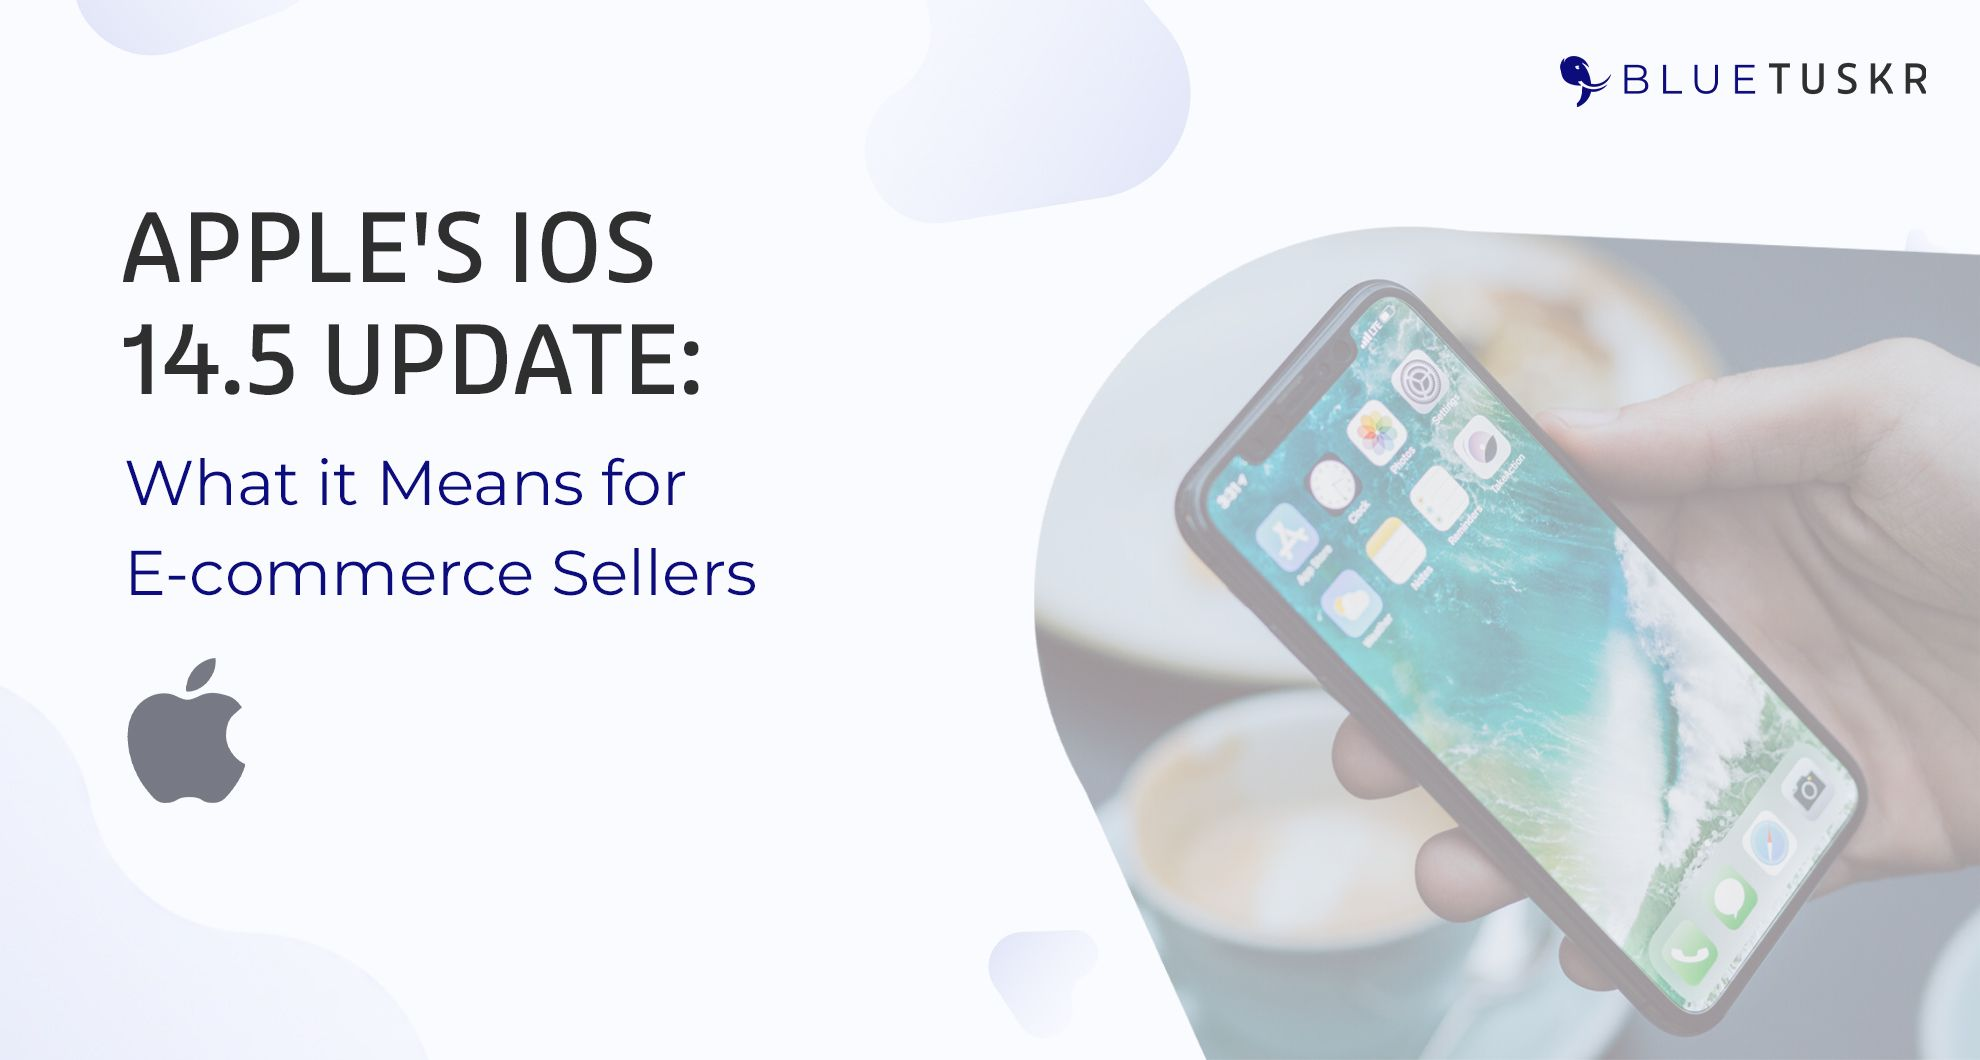 Apple's iOS 14.5 Update: What it Means for E-commerce Sellers